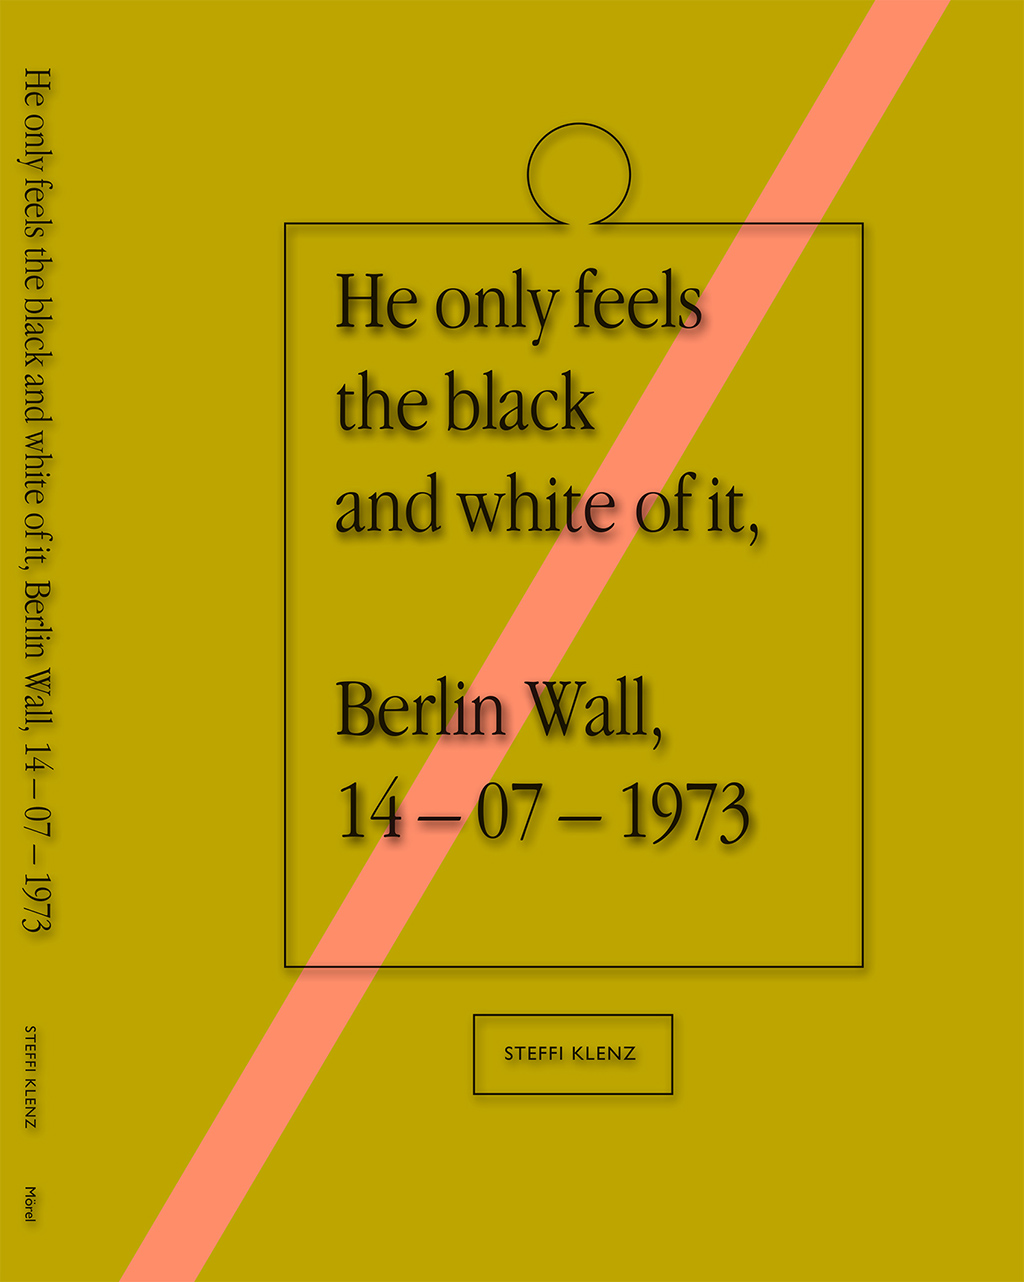 """I design quite a few books and publications, mostly for the cultural sector. This is the cover of the artist book I designed in collaboration with artist Steffi Klenz. It's a book centered around one Associate Press photograph of the Berlin Wall and daily life and tensions in a family in socialist East-Germany."""